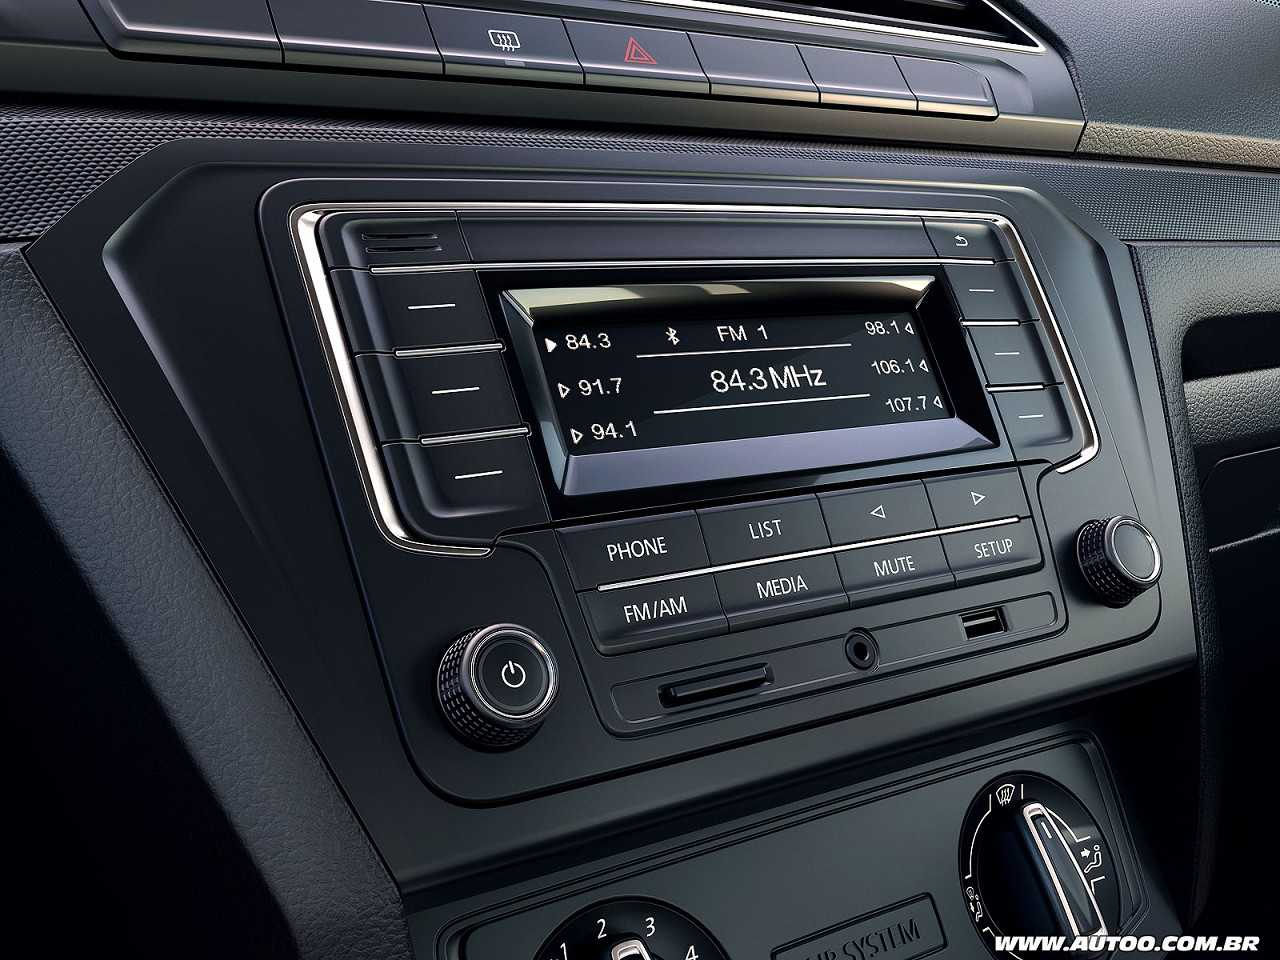 VolkswagenGol 2017 - console central